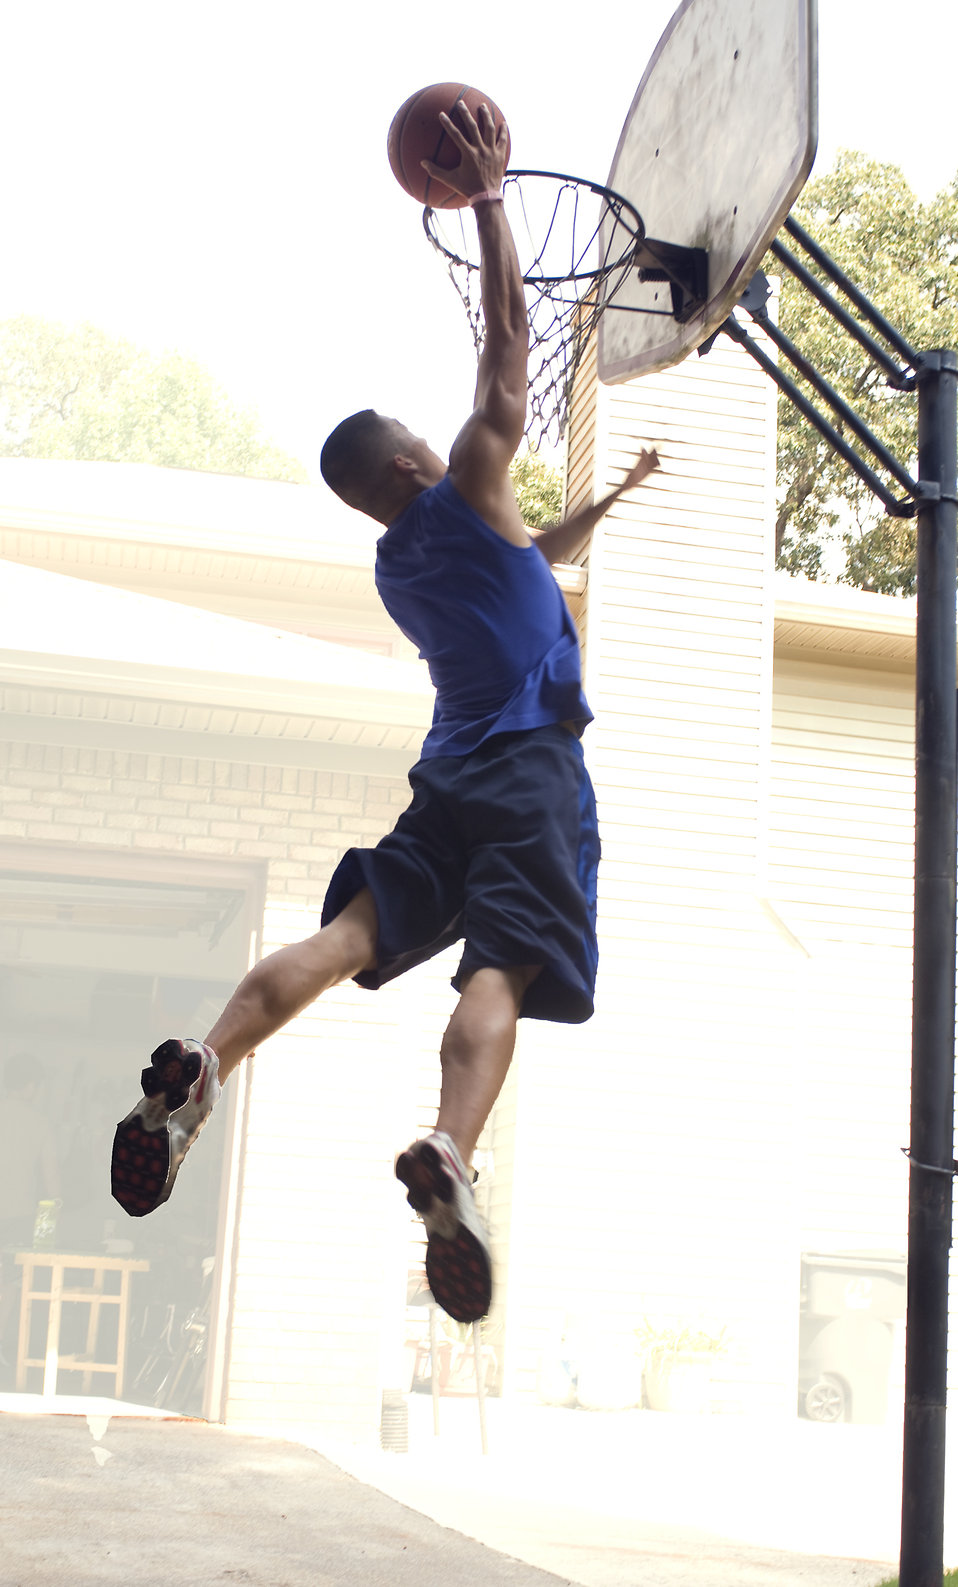 A young man dunking a basketball : Free Stock Photo